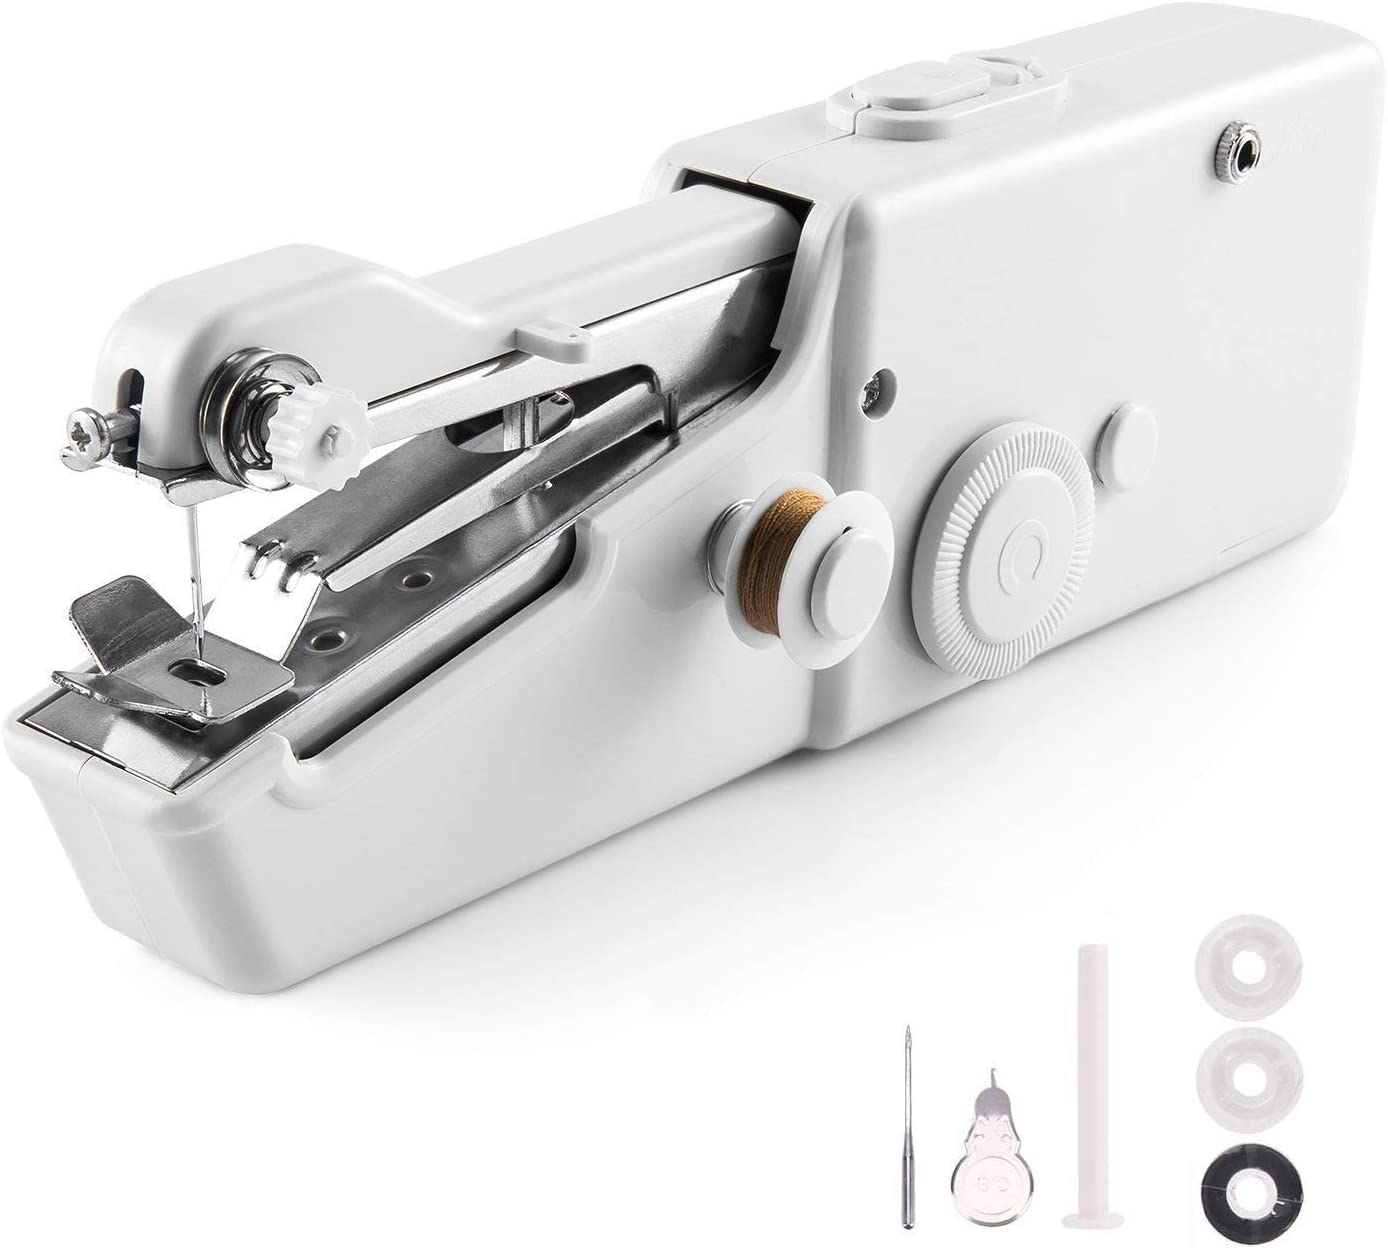 Clothes Home Travel Use White Household Quick Repairing Stitch Tool Suitable for Leather Kids Adults VOLCANOES CLUB Handheld Sewing Machine Curtains Mini Handy Cordless Electric Sewing Machine Portable for Beginners